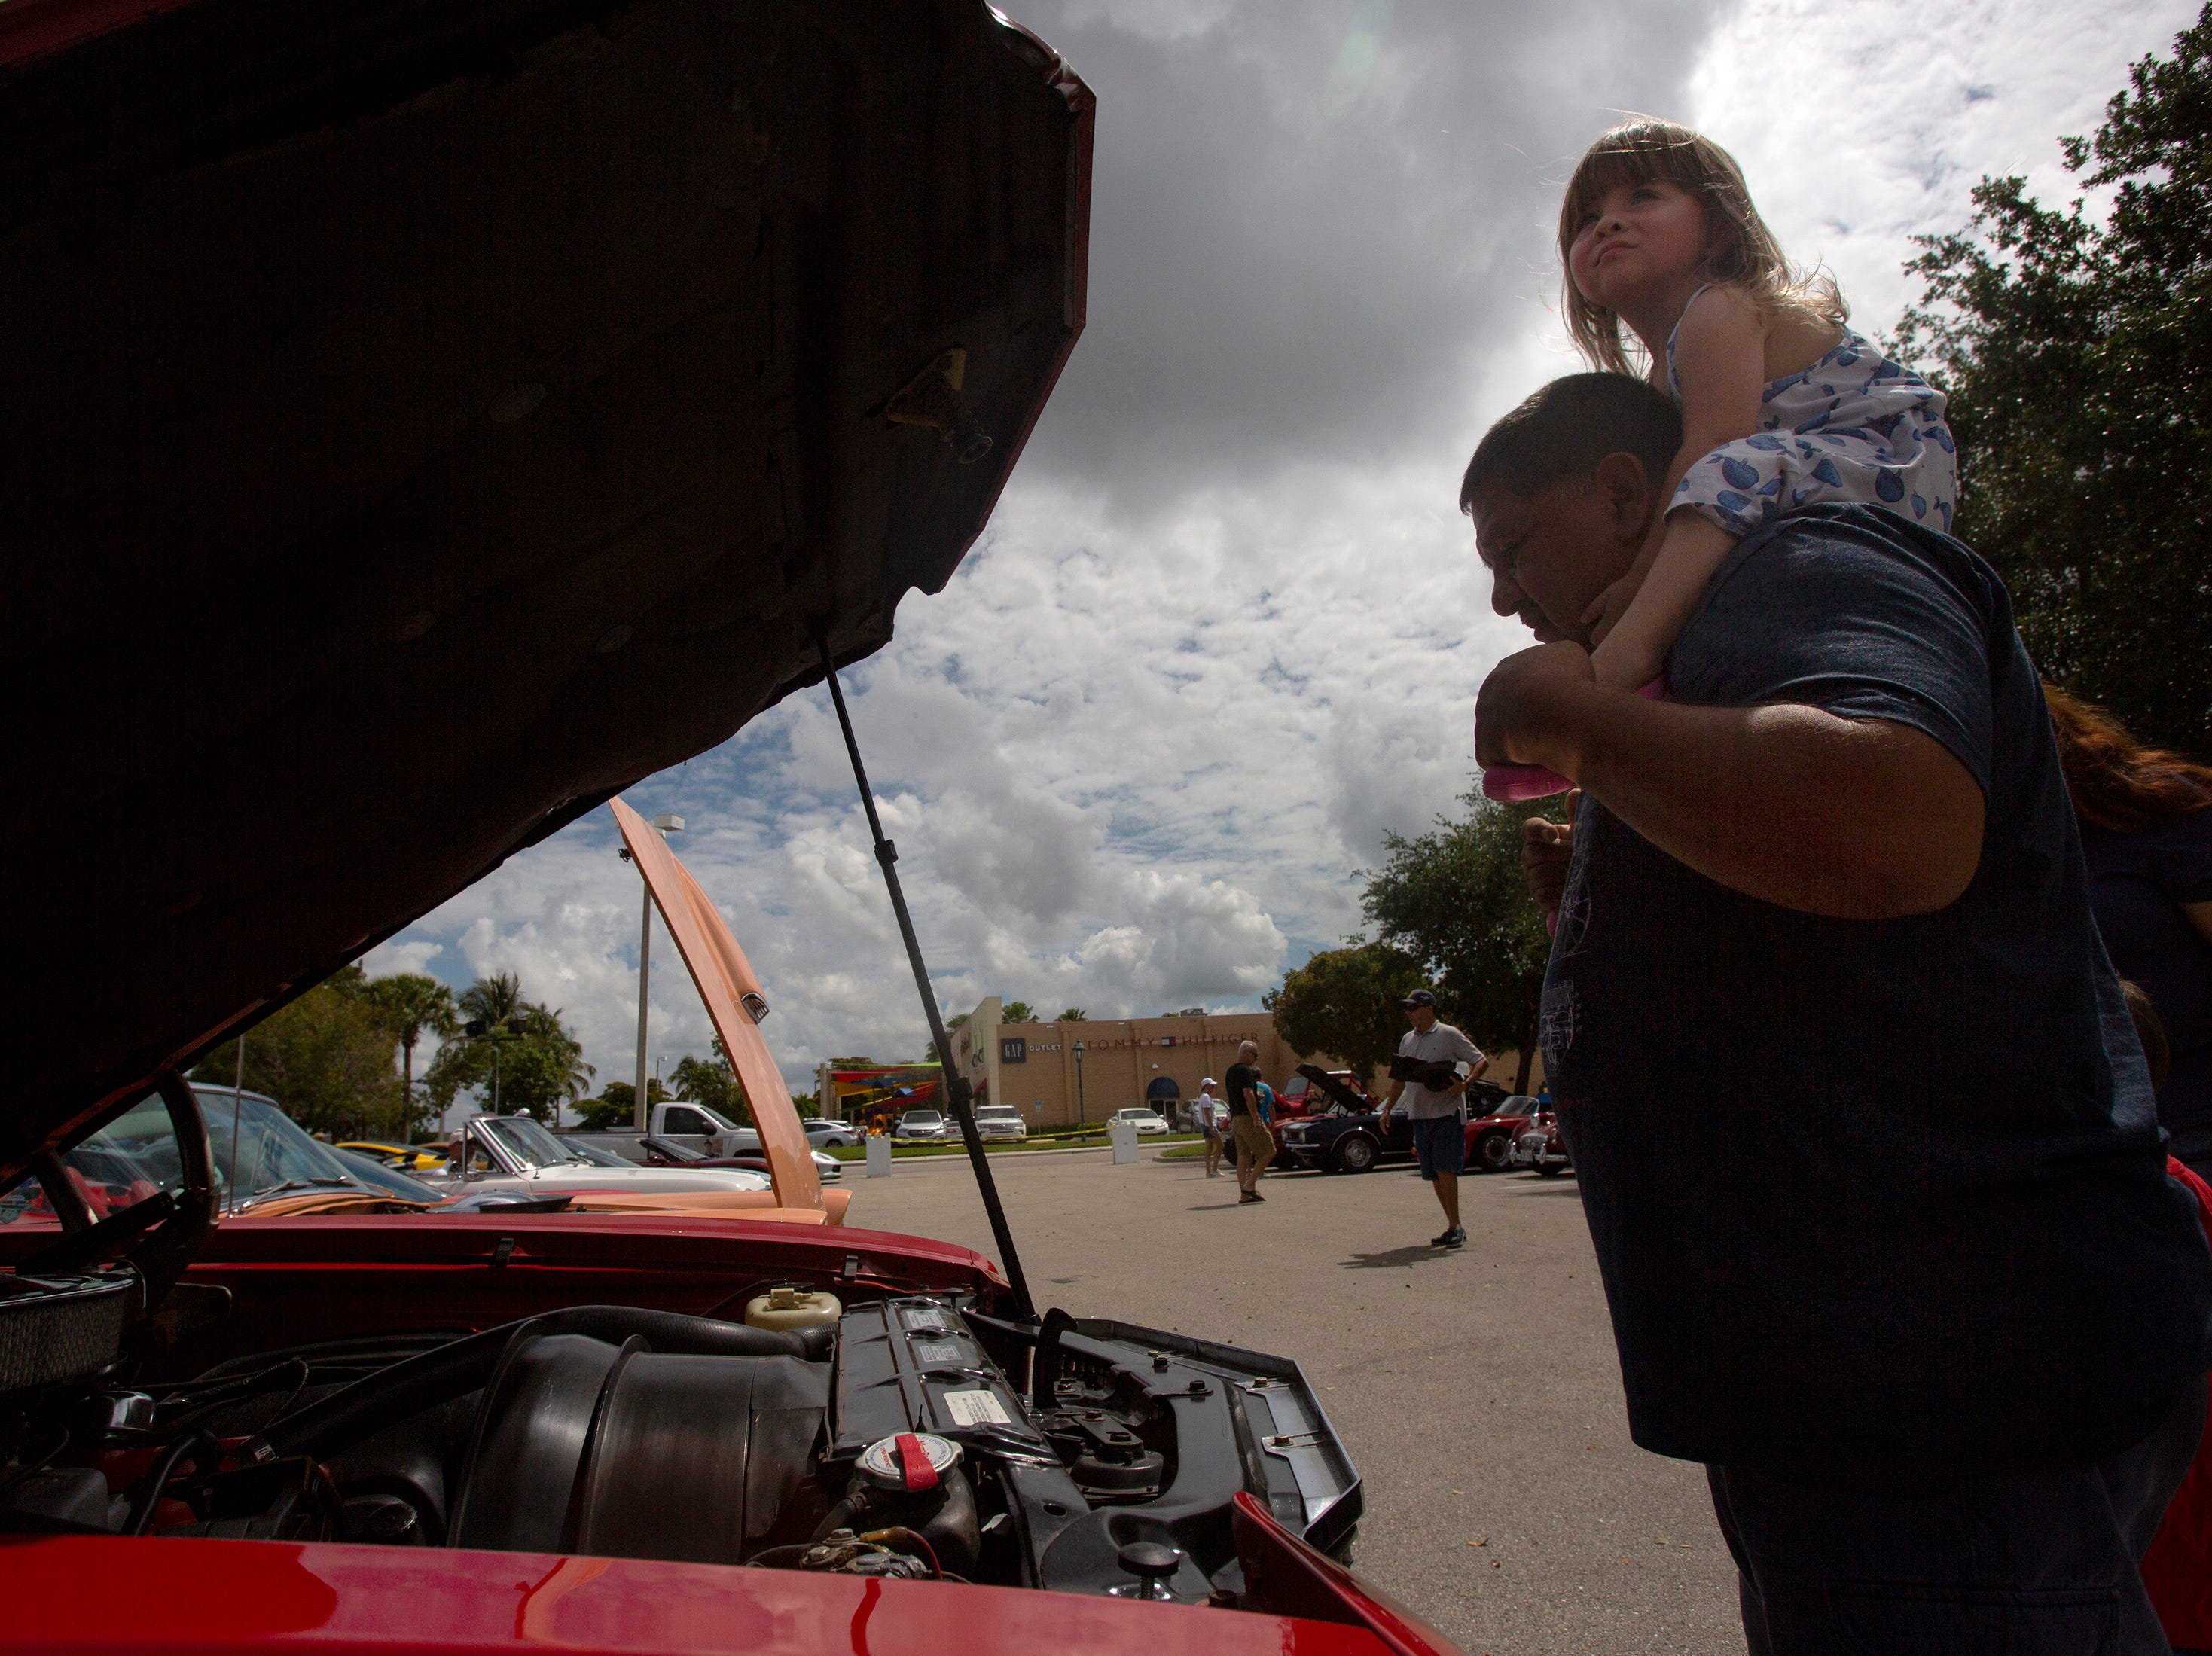 Adolfo Lopez and his friend's daughter Rosalie Abrams both from Estero admire cars together during the Cruis'n for a Cause event on Saturday, April 13, 2019 at the Miromar Outlets in Estero.